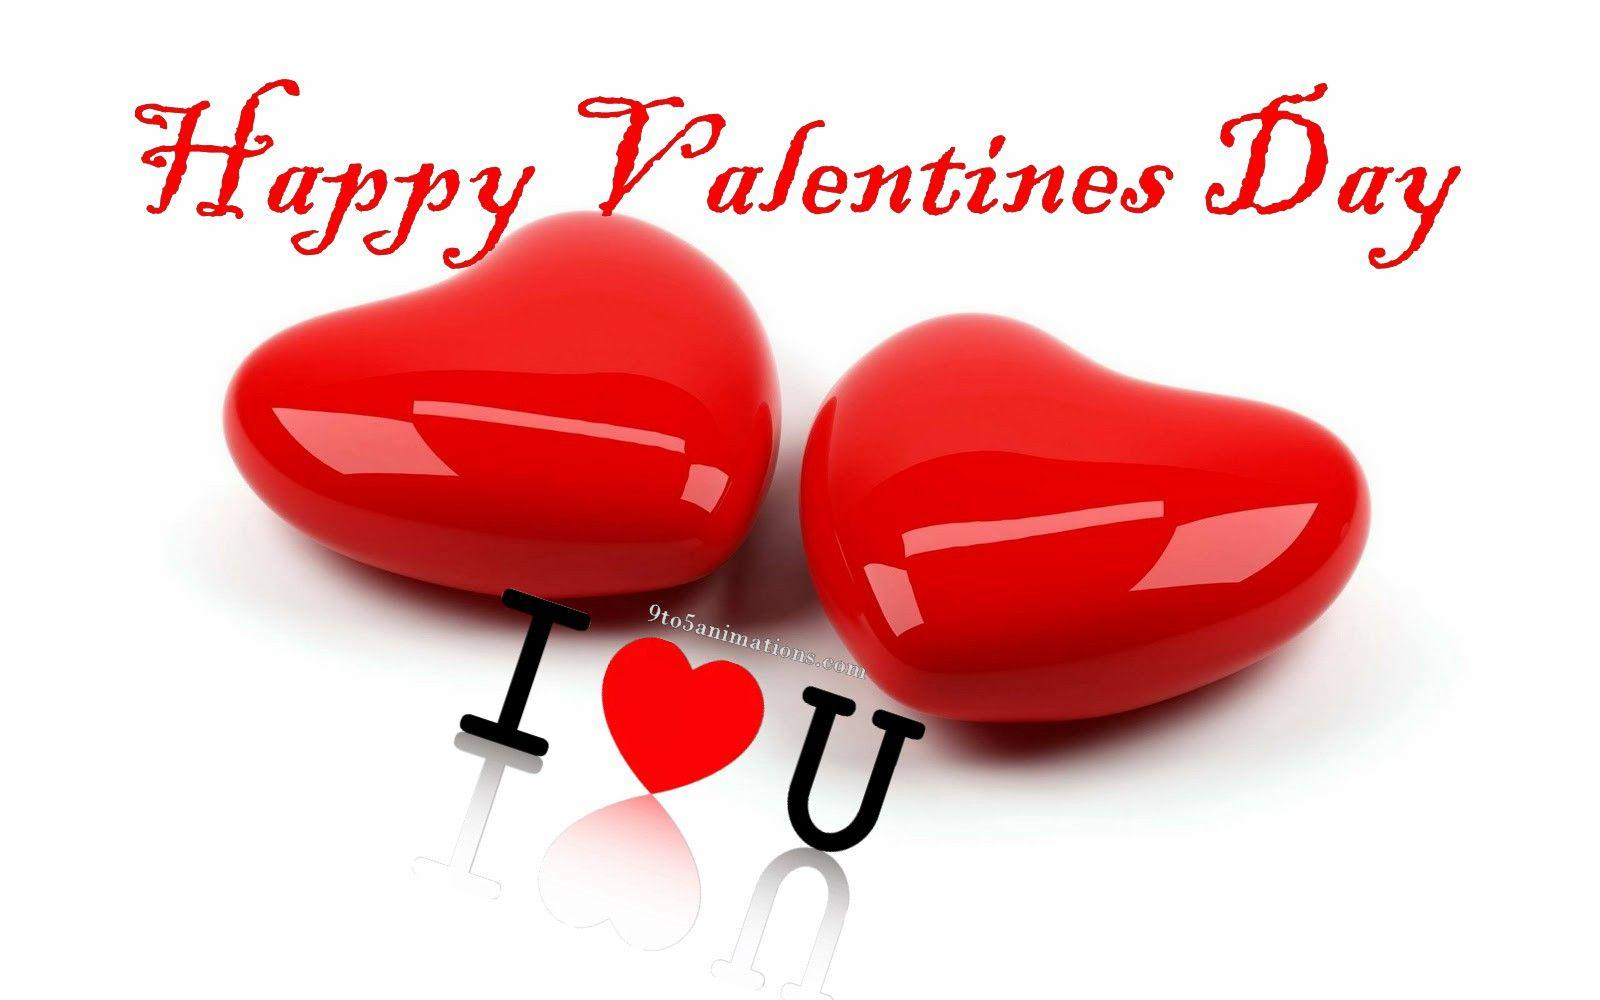 Best 2019 Happy Valentine's Day Wallpaper | | 9to5animations.com ...